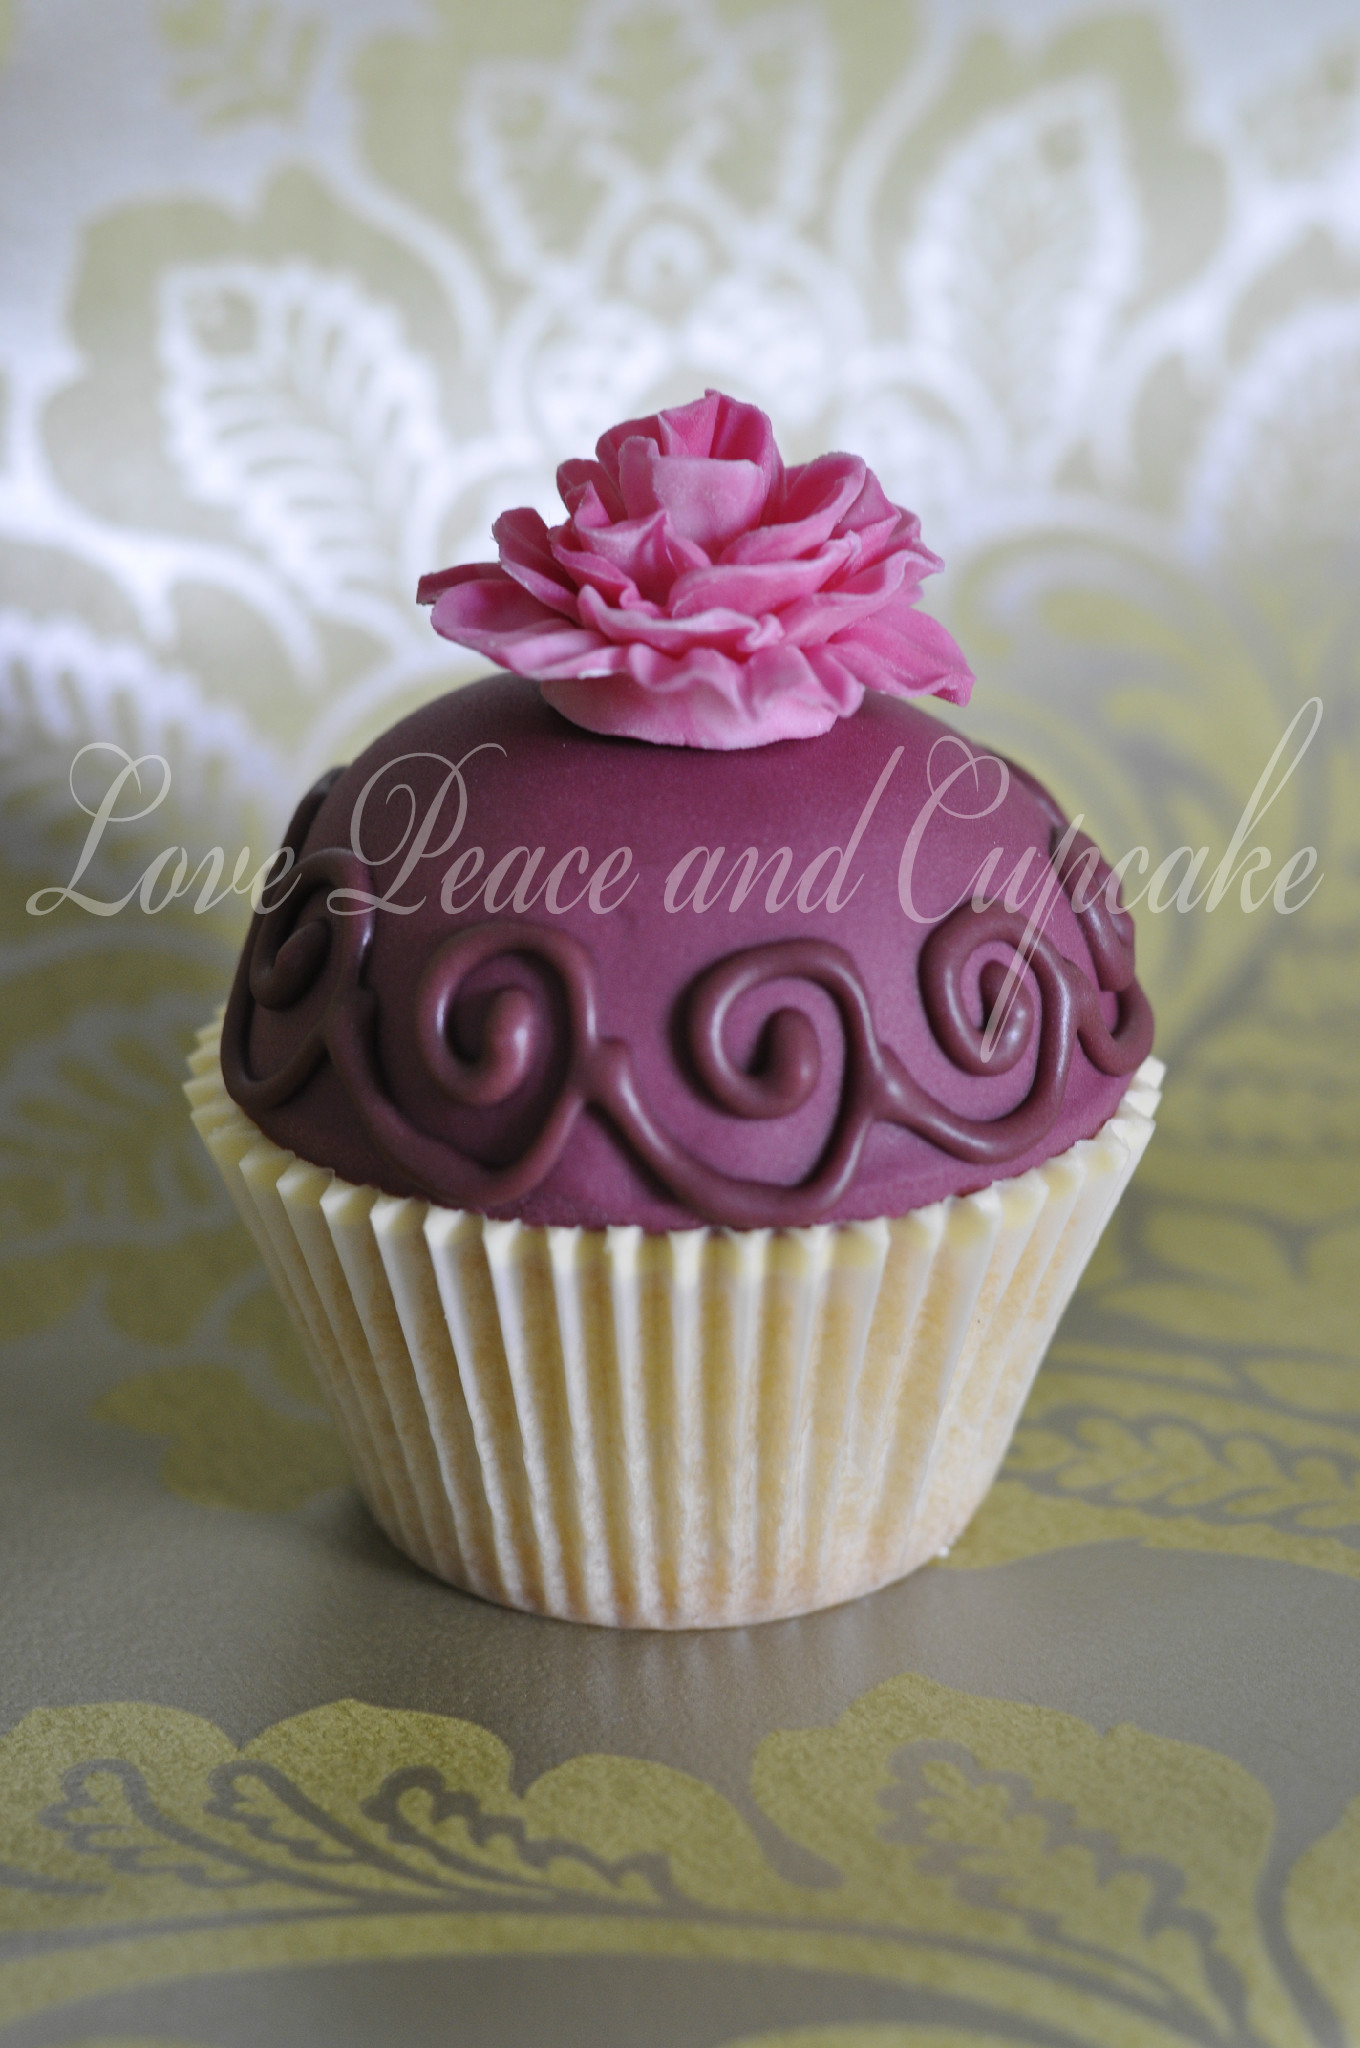 Beautiful Cupcake Images : Vintage Cupcake by Love peace and cupcake